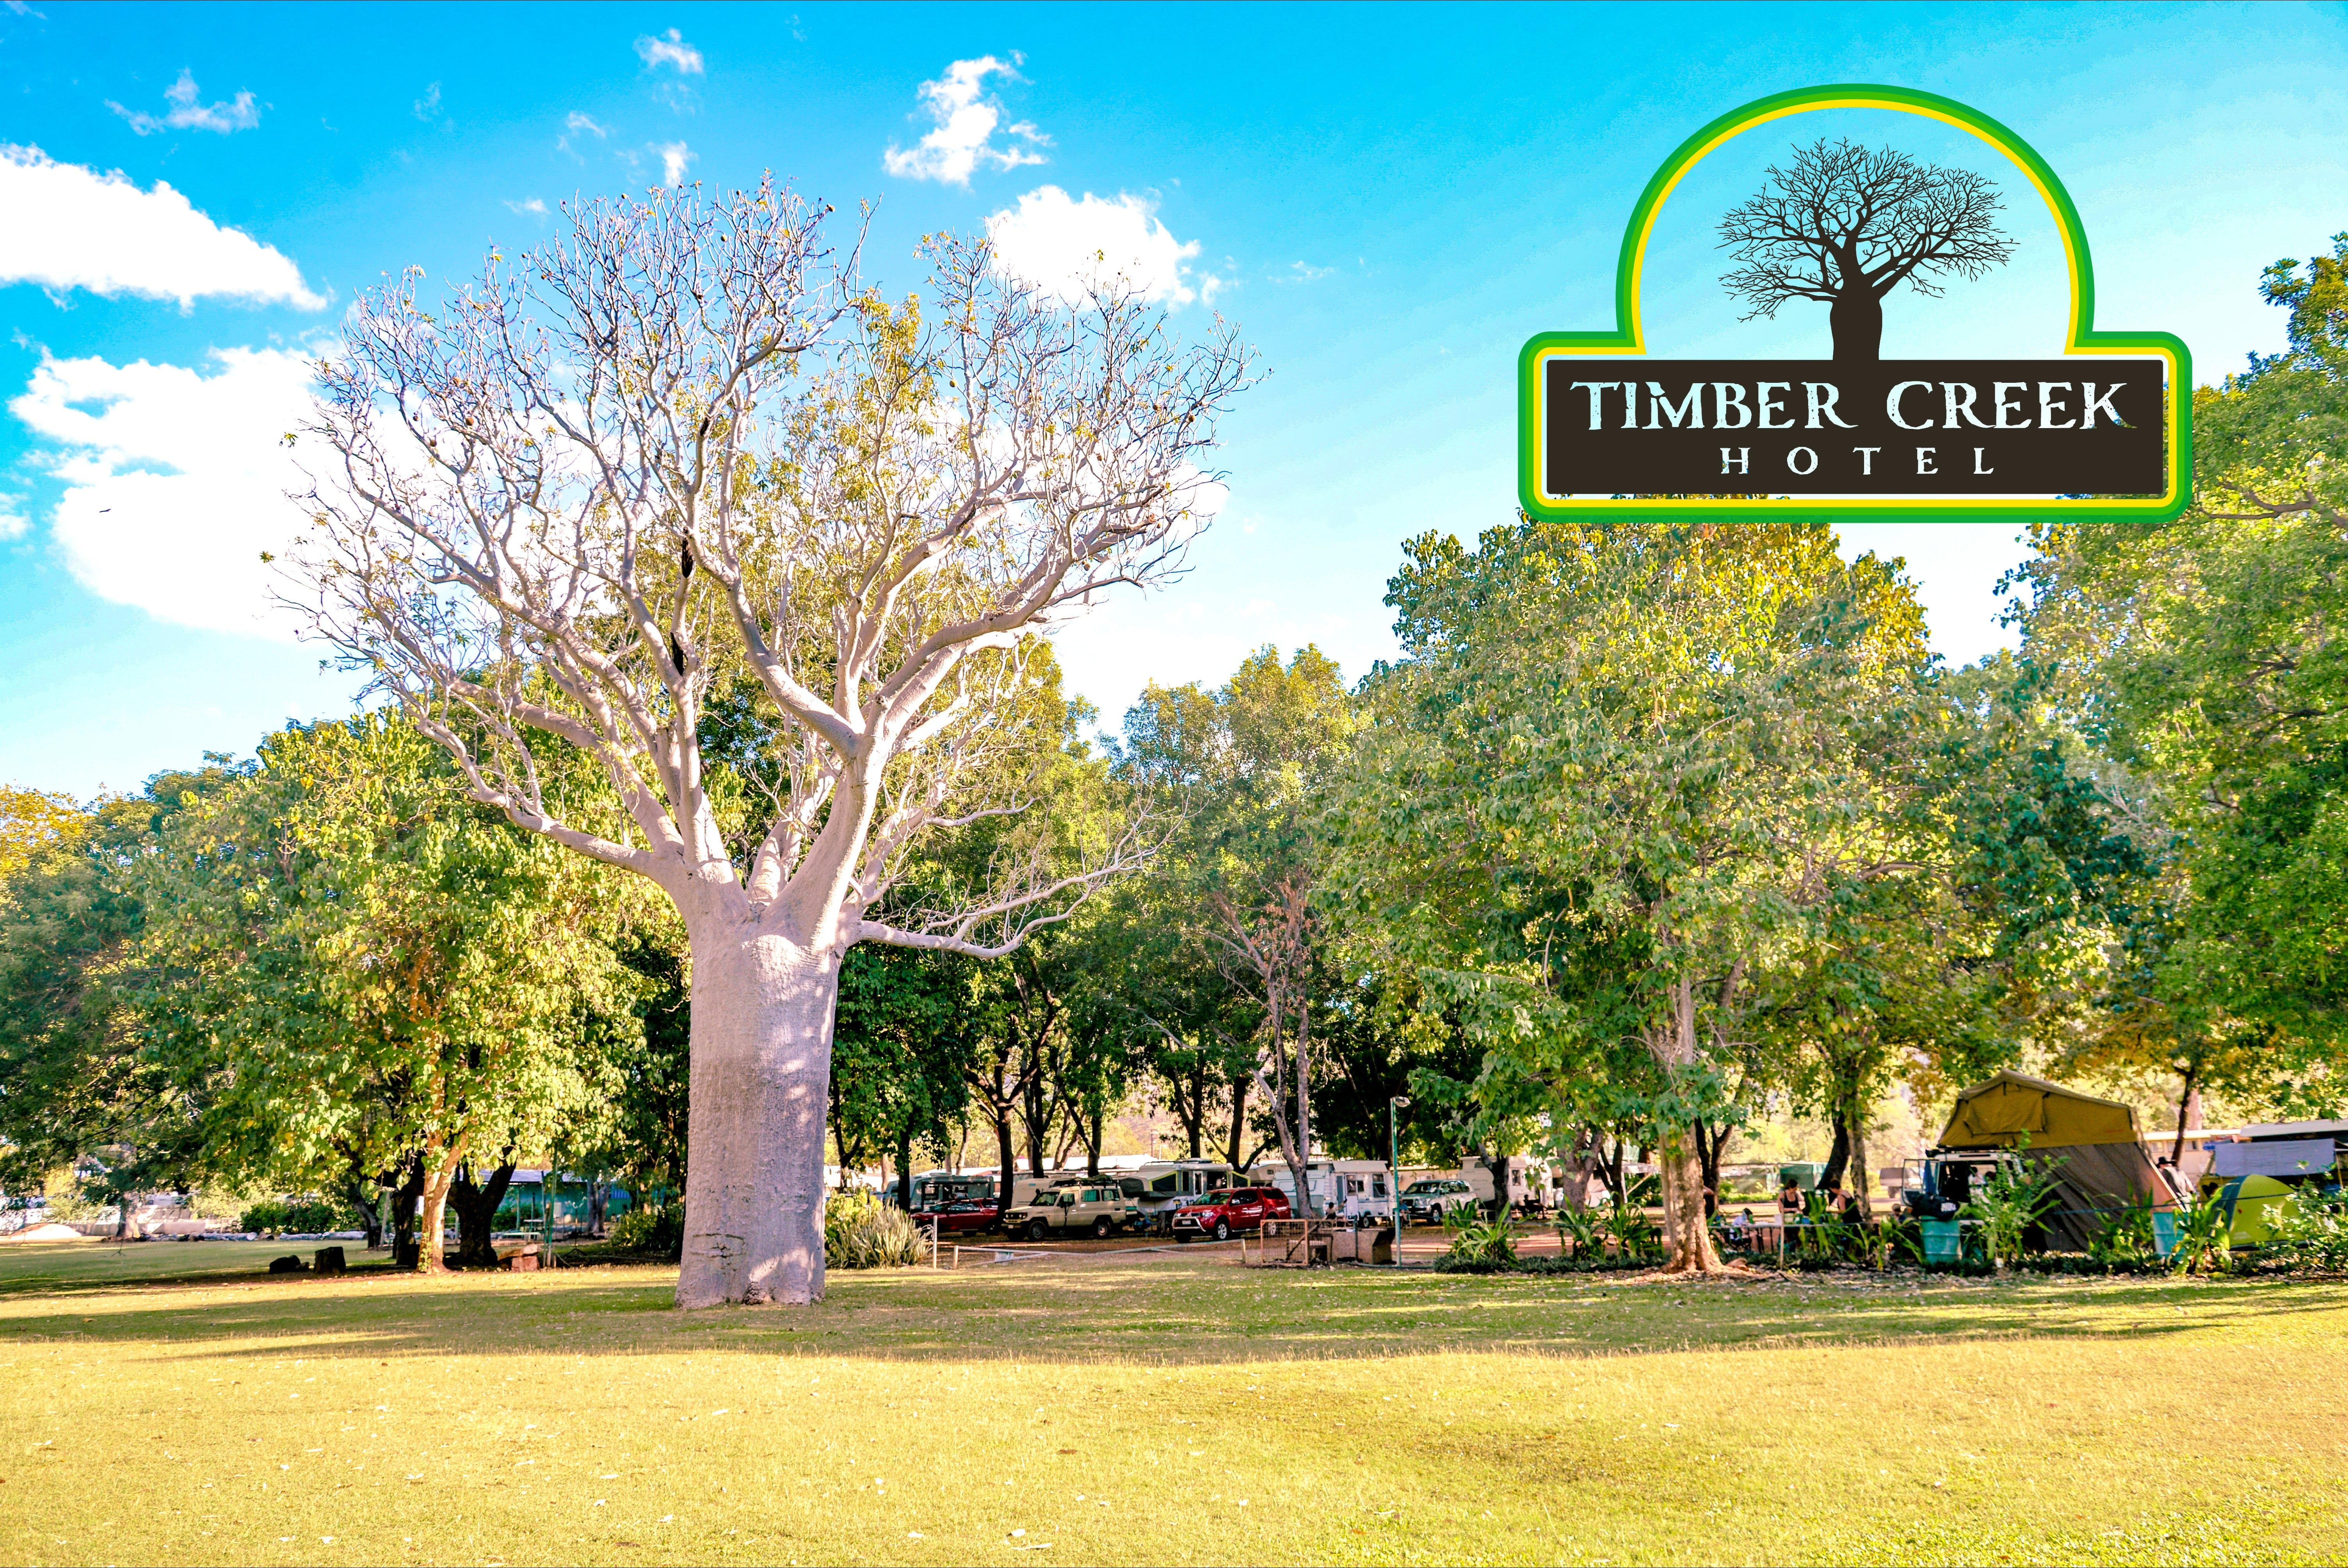 Timber Creek Hotel and Caravan Park - Accommodation Cairns